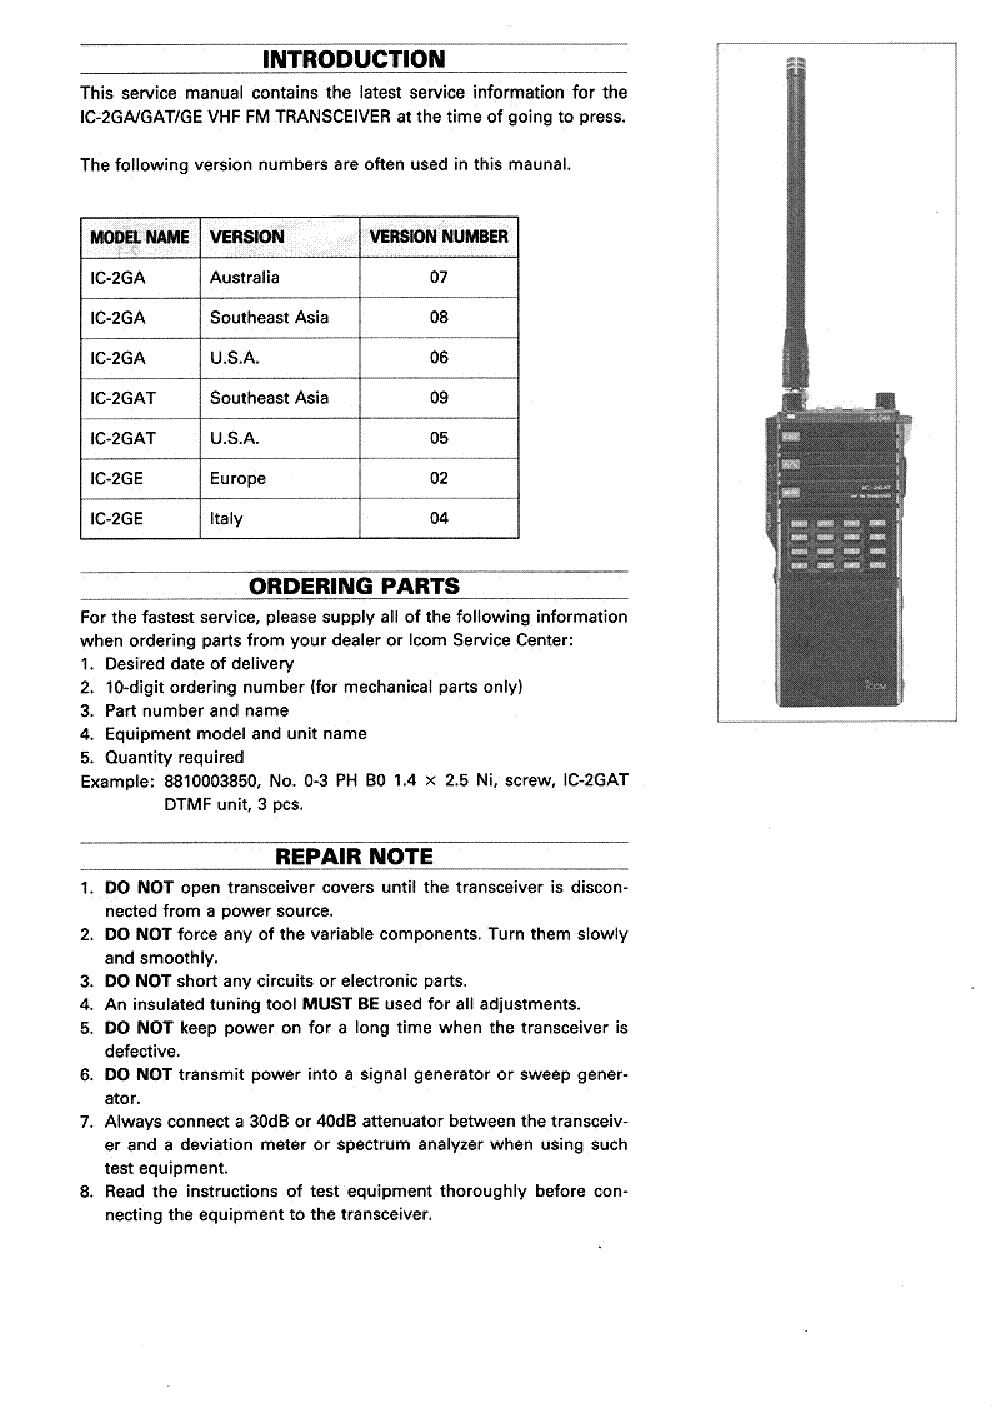 icom ic 2gat service manual